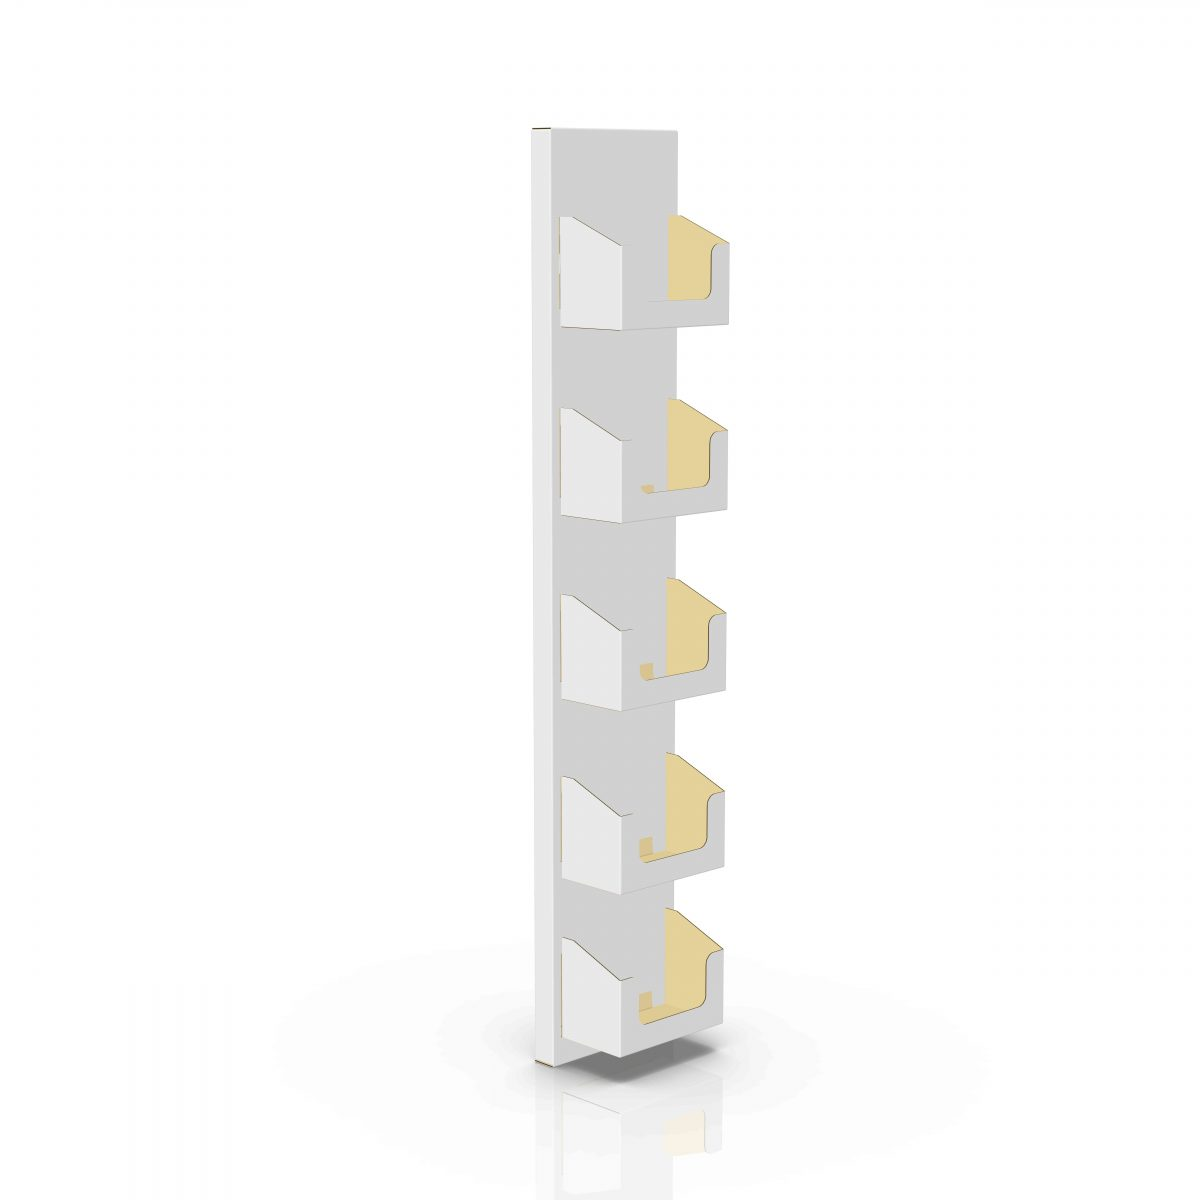 Cardboard display sidekick with 5 shelves for cd, can be wall mounted - 3d